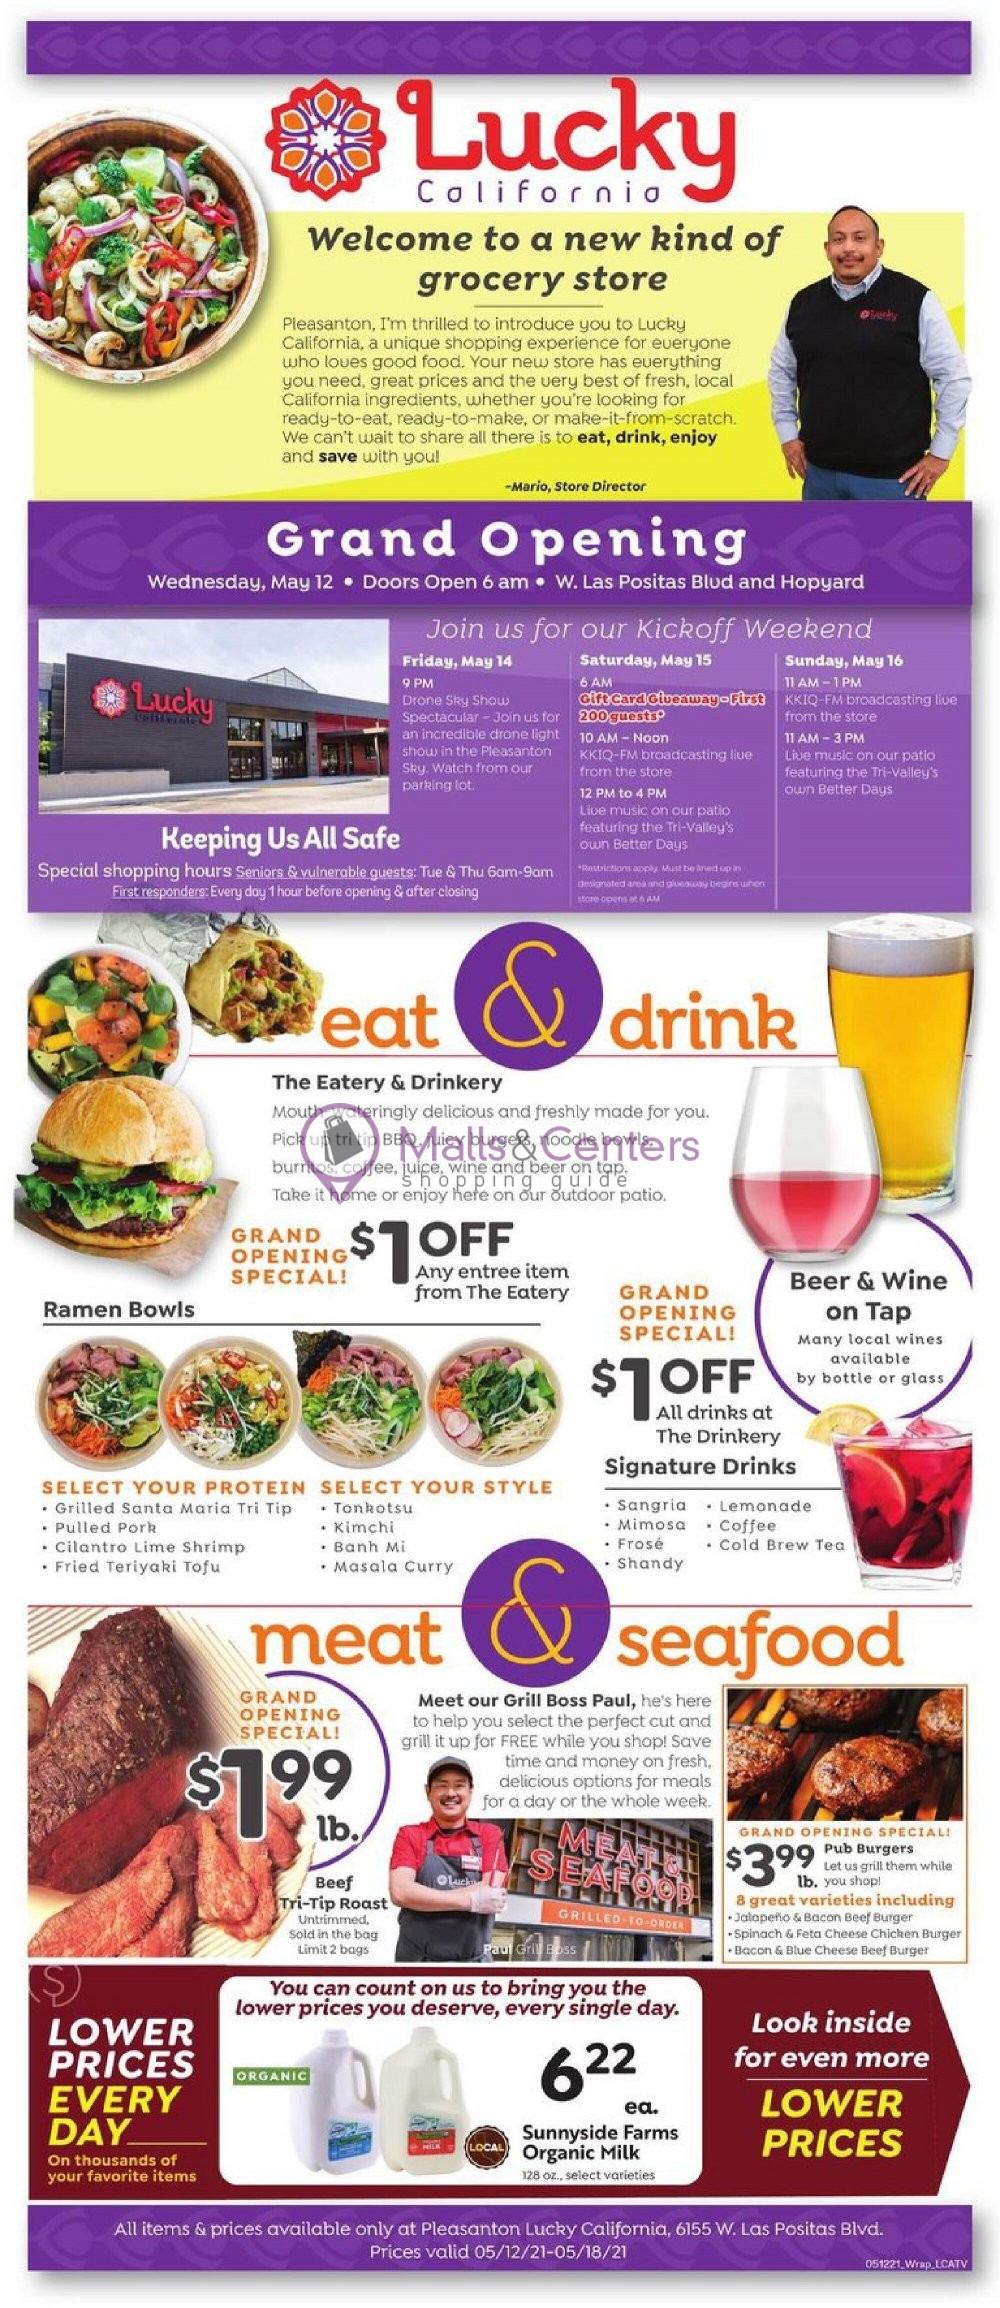 weekly ads Lucky Supermarkets - page 1 - mallscenters.com